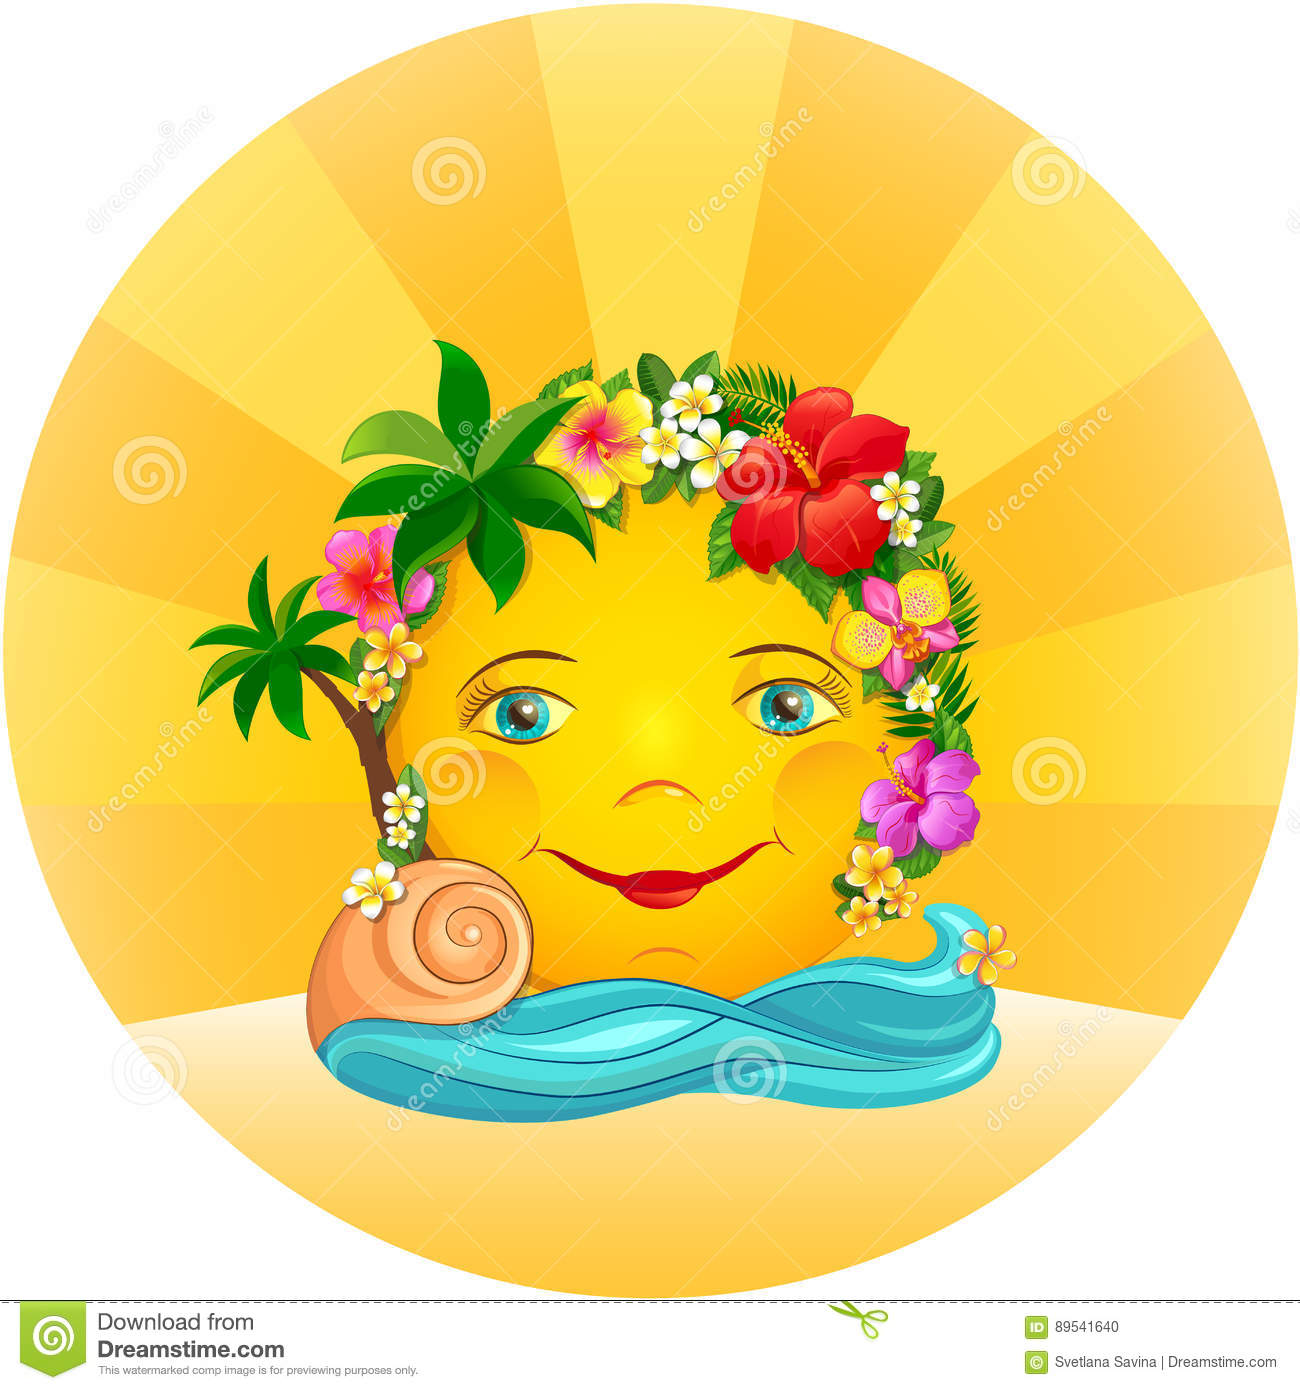 Tropical Sun In A Wreath Of Flowers Stock Vector.